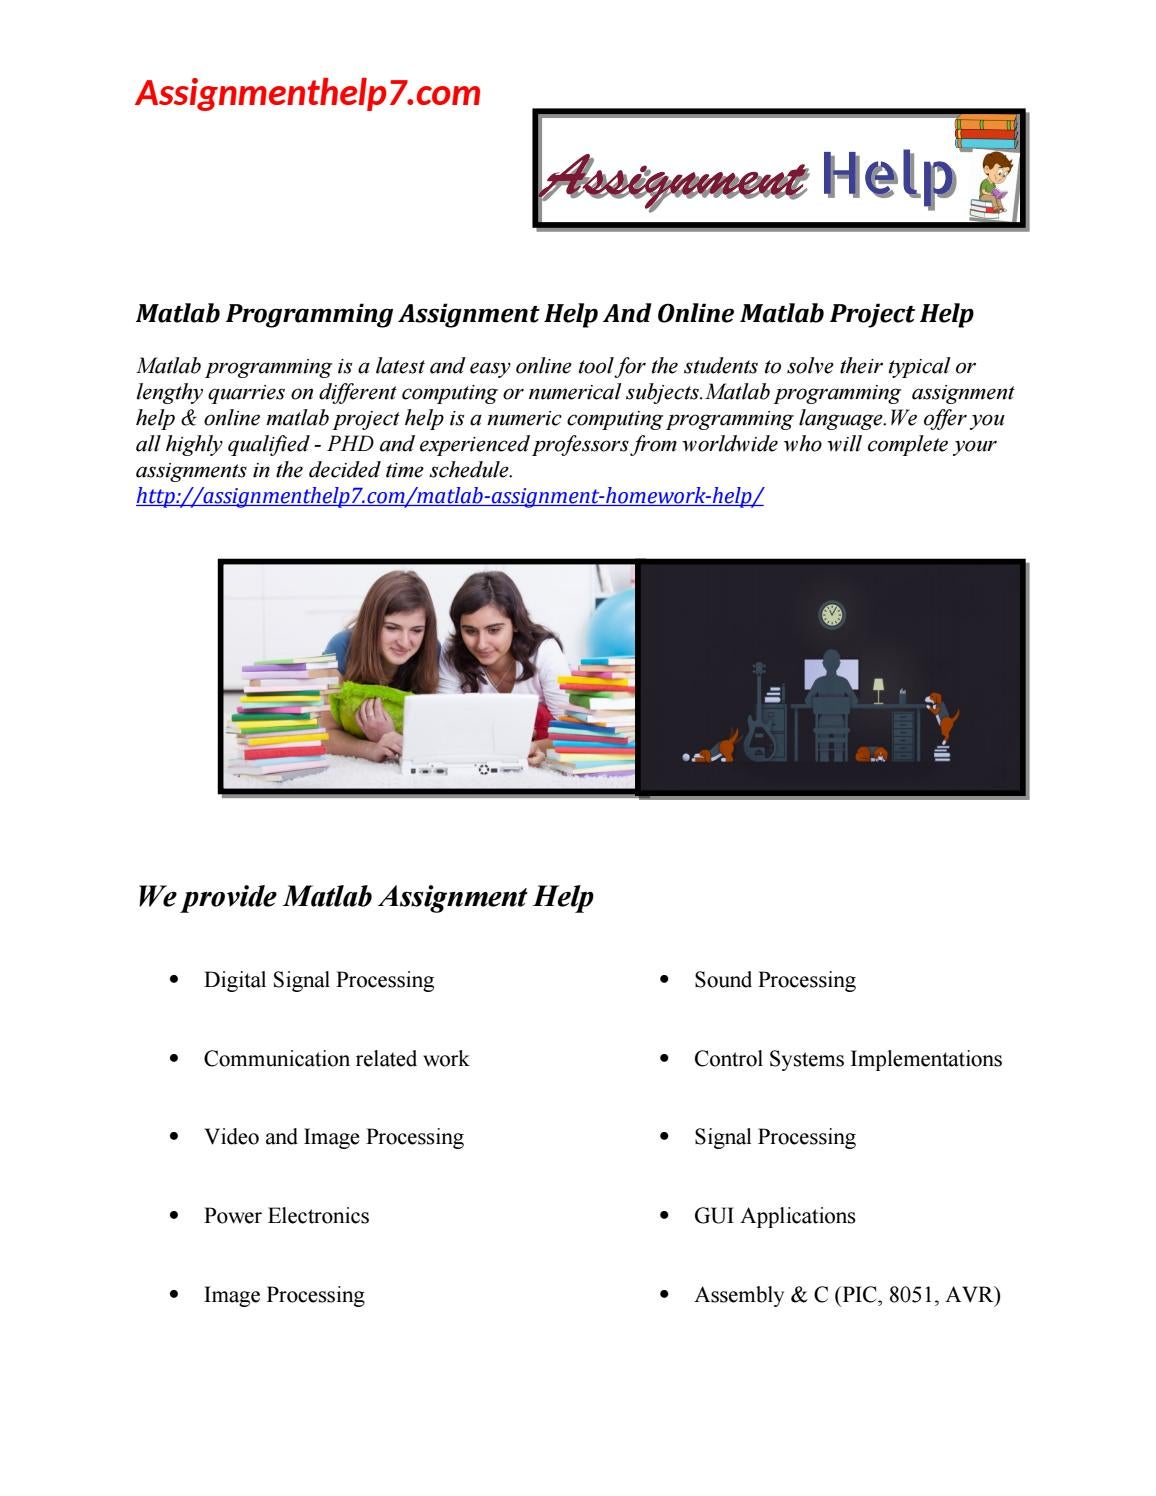 Matlab Programming Assignment Help And Online Matlab Project